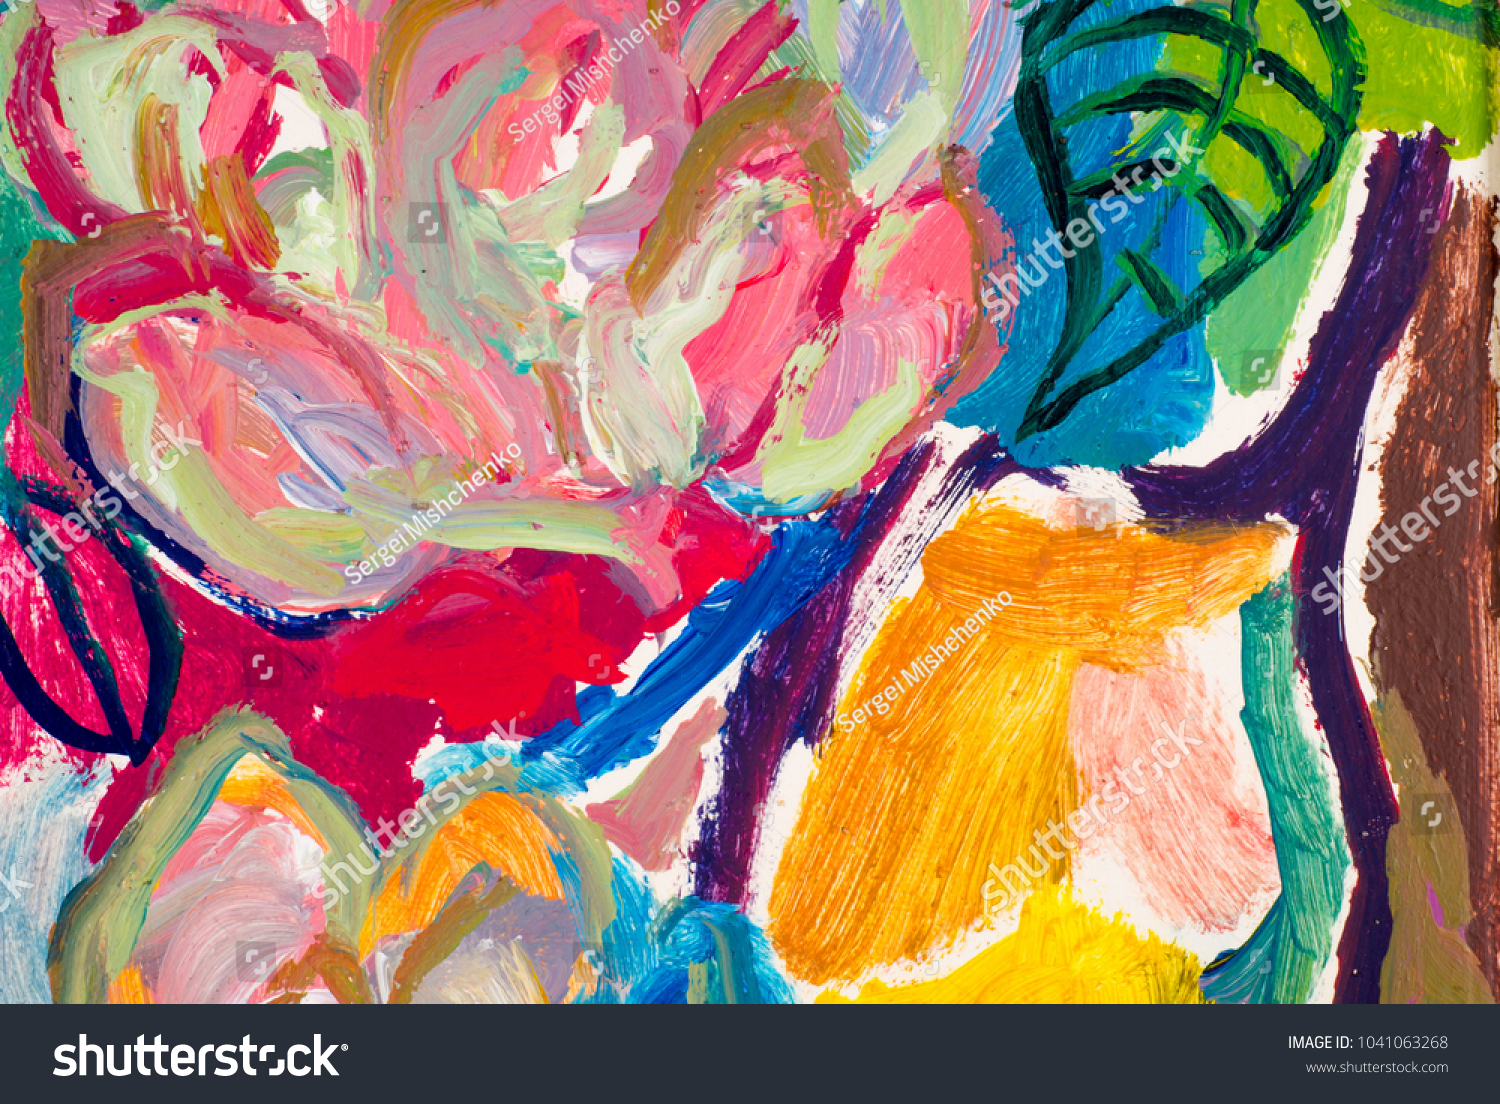 Painted oil painting has the name painted abstract drawing texture background a picture